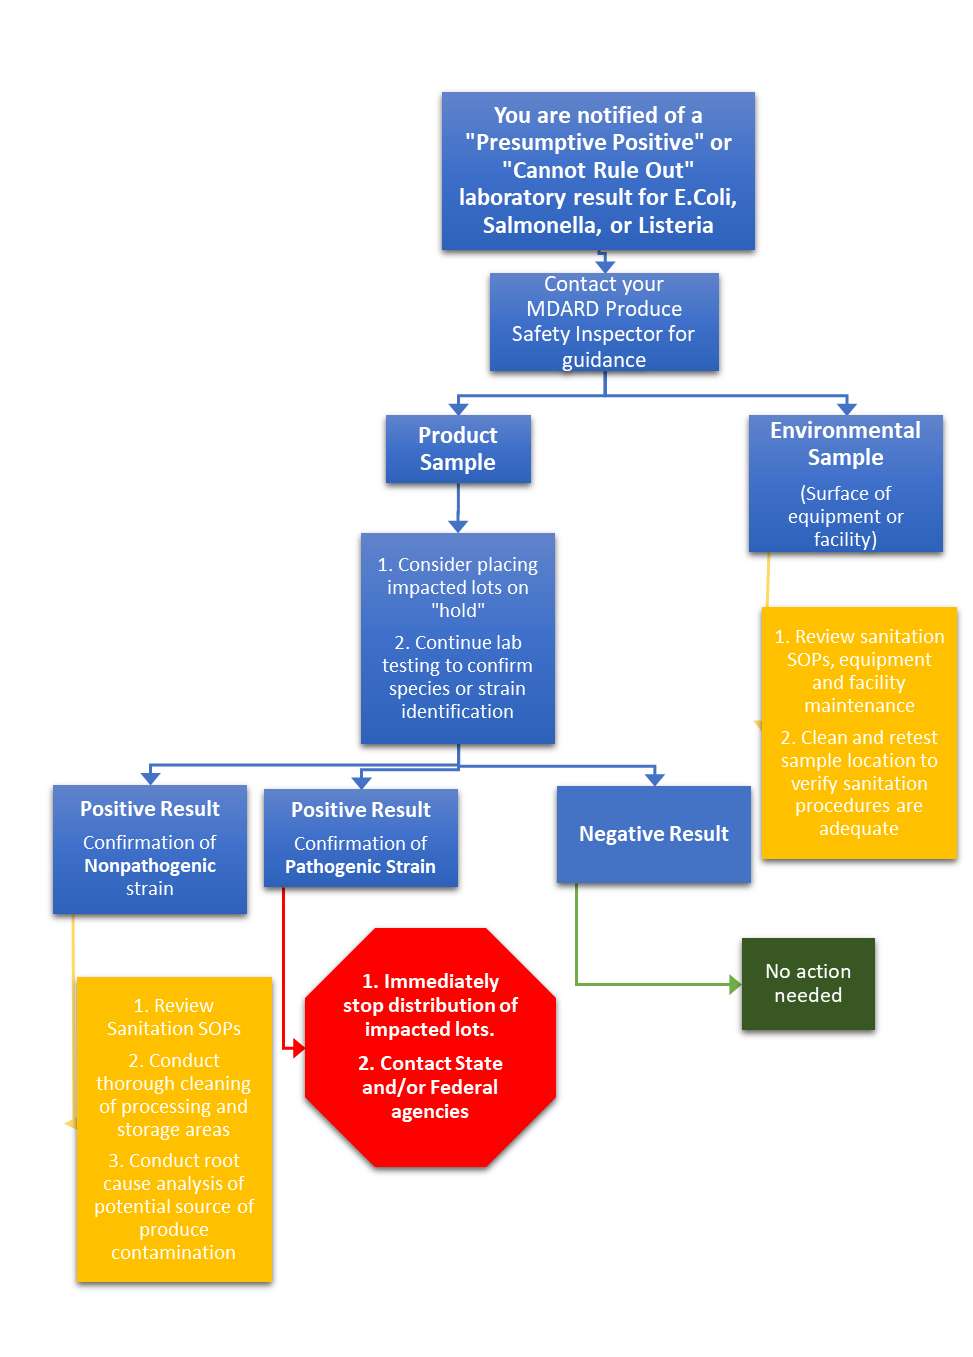 Environmental Sample Flowchart